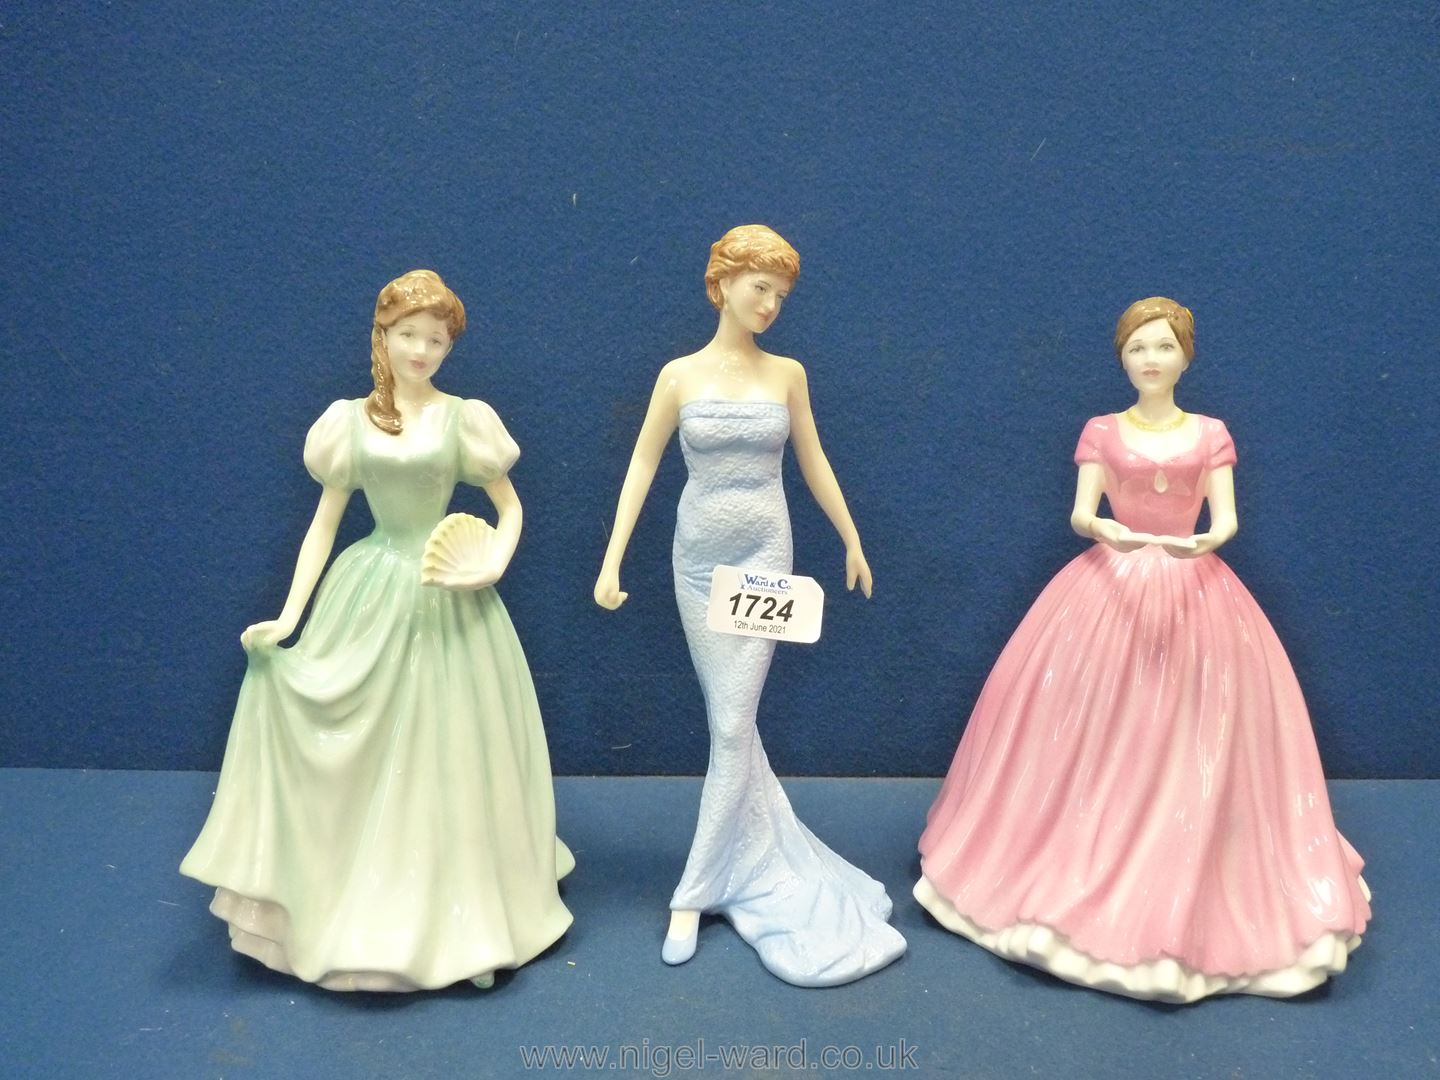 Three Royal Doulton figures - Stephanie, Diana Princess of Wales and Sweet Memories.